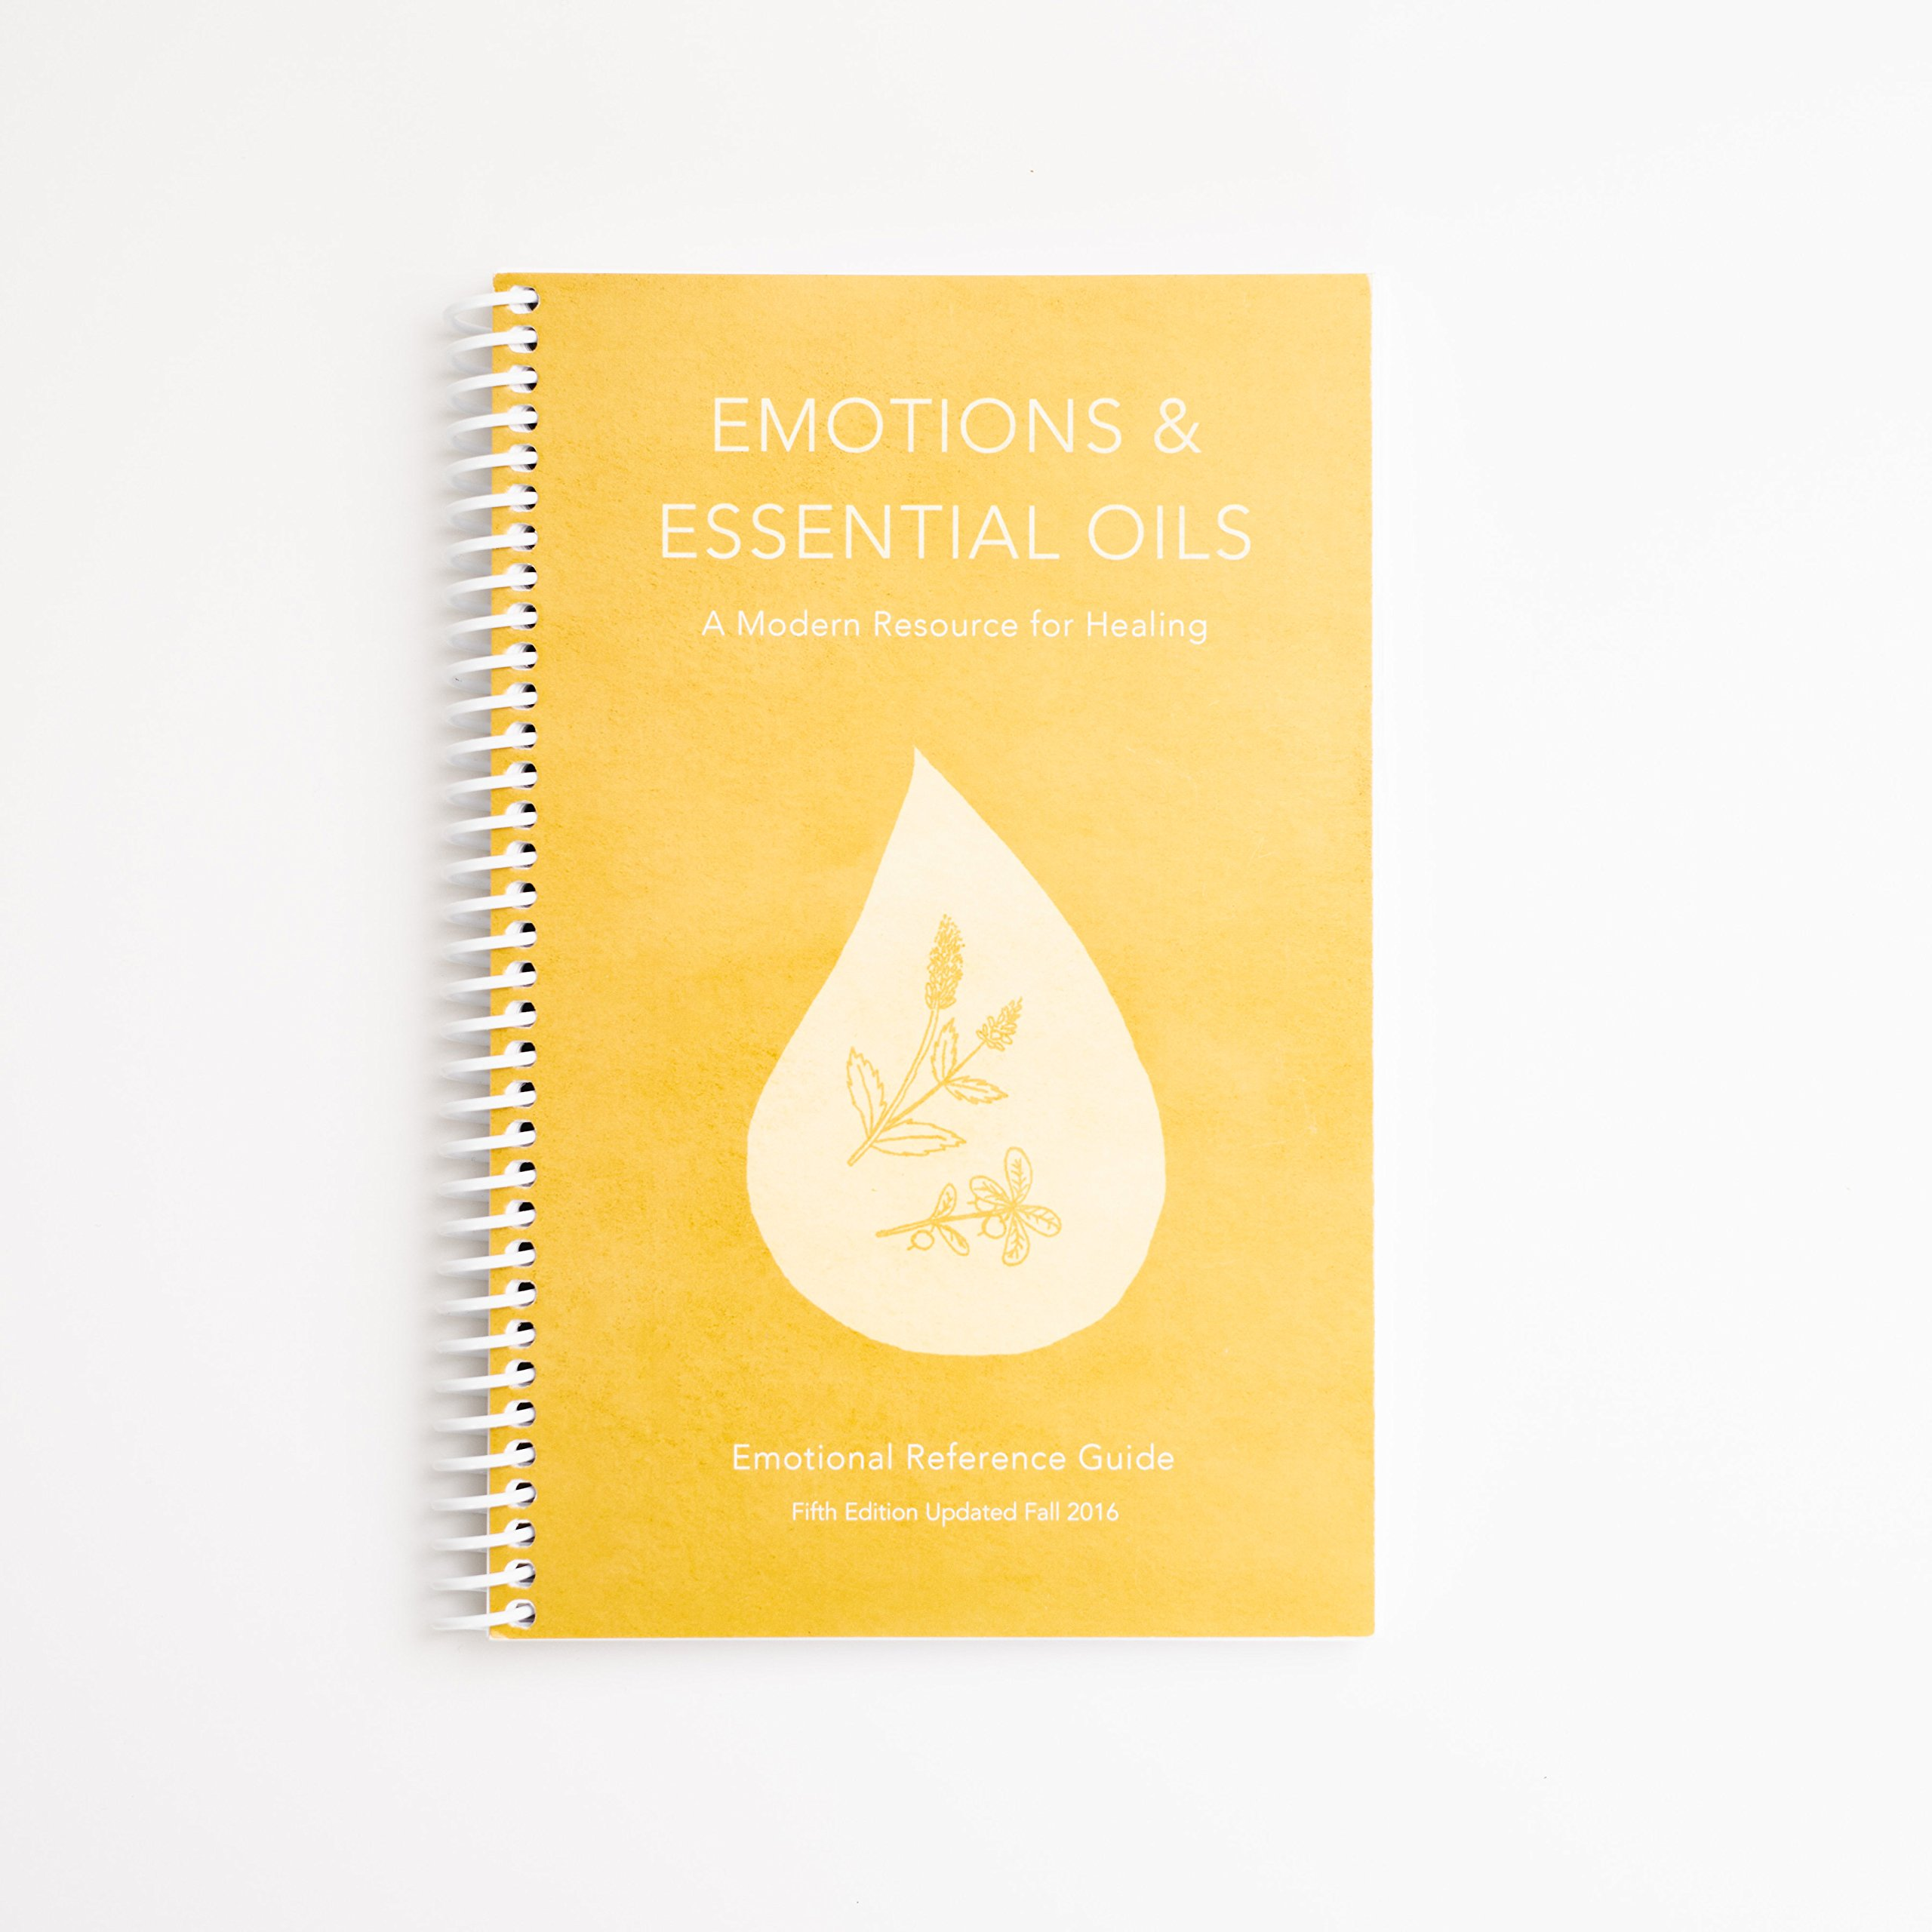 Emotions & Essential Oils, 5th Edition: A Modern Resource for Healing:  Enlighten: 9780990696551: Amazon.com: Books